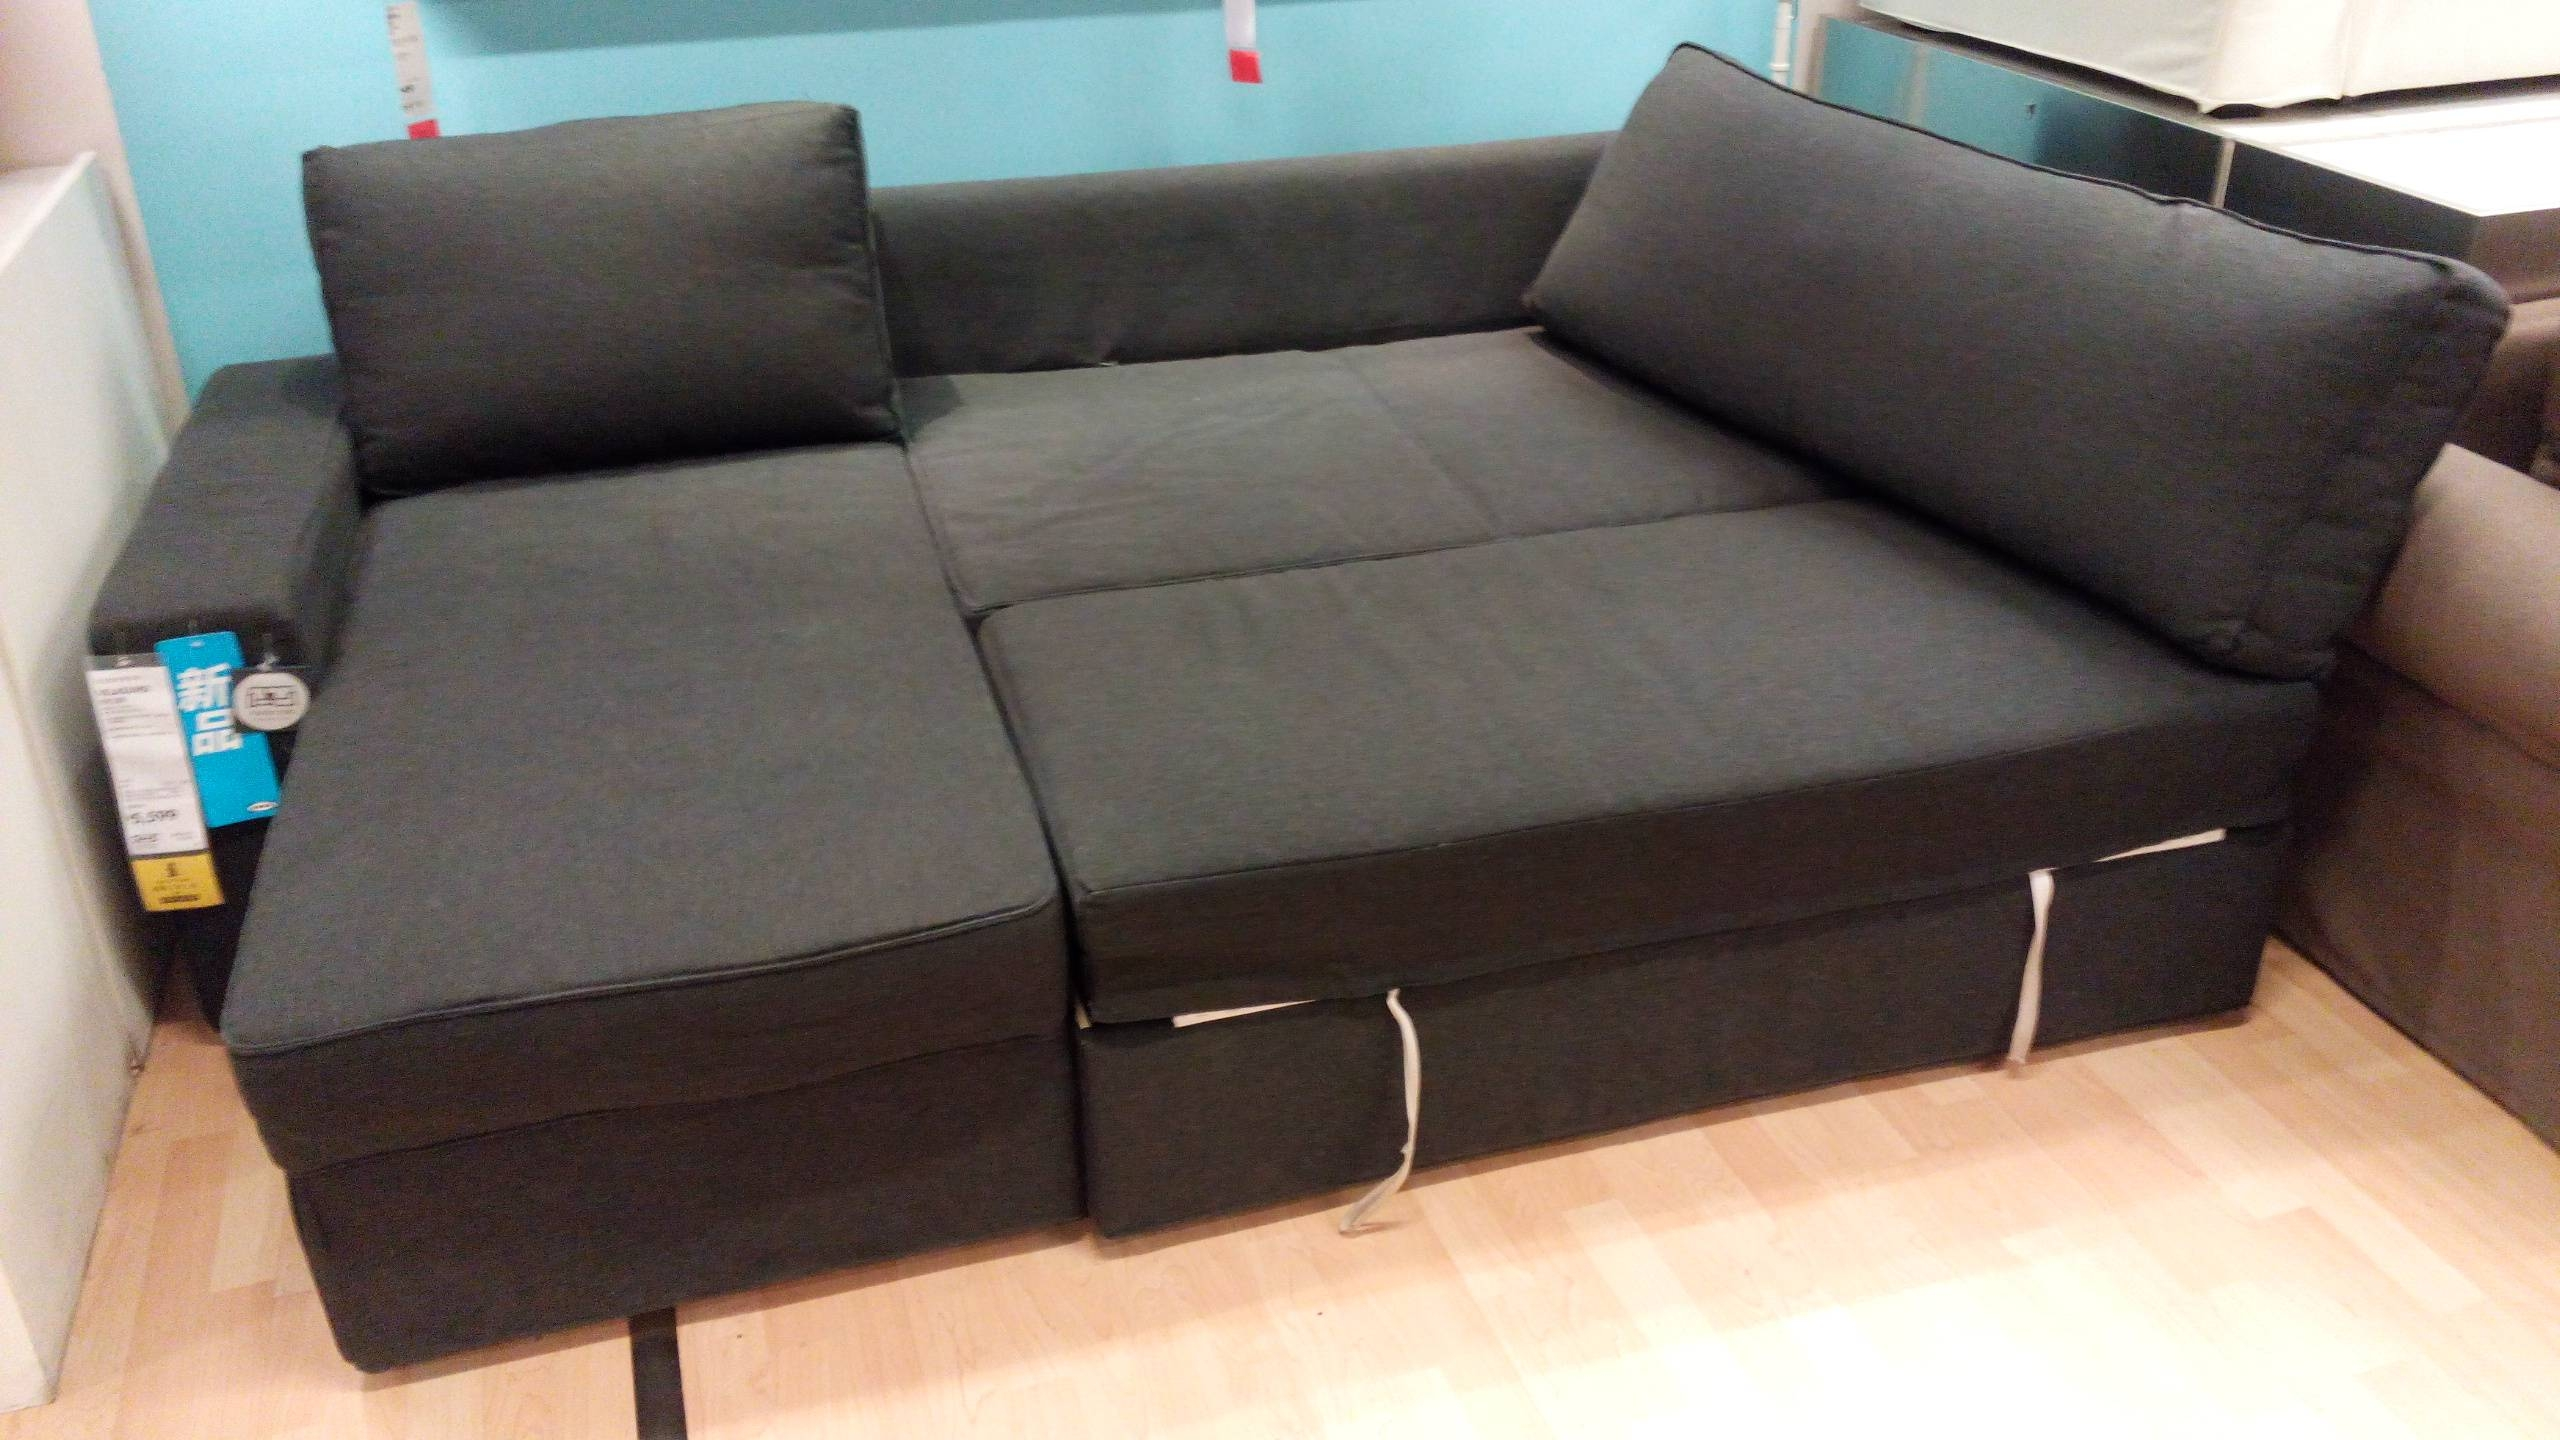 Furniture: Luxury Sofa Bed Ikea For Home Furniture Ideas — Nysben throughout Corner Sofa Bed With Storage Ikea (Image 16 of 30)